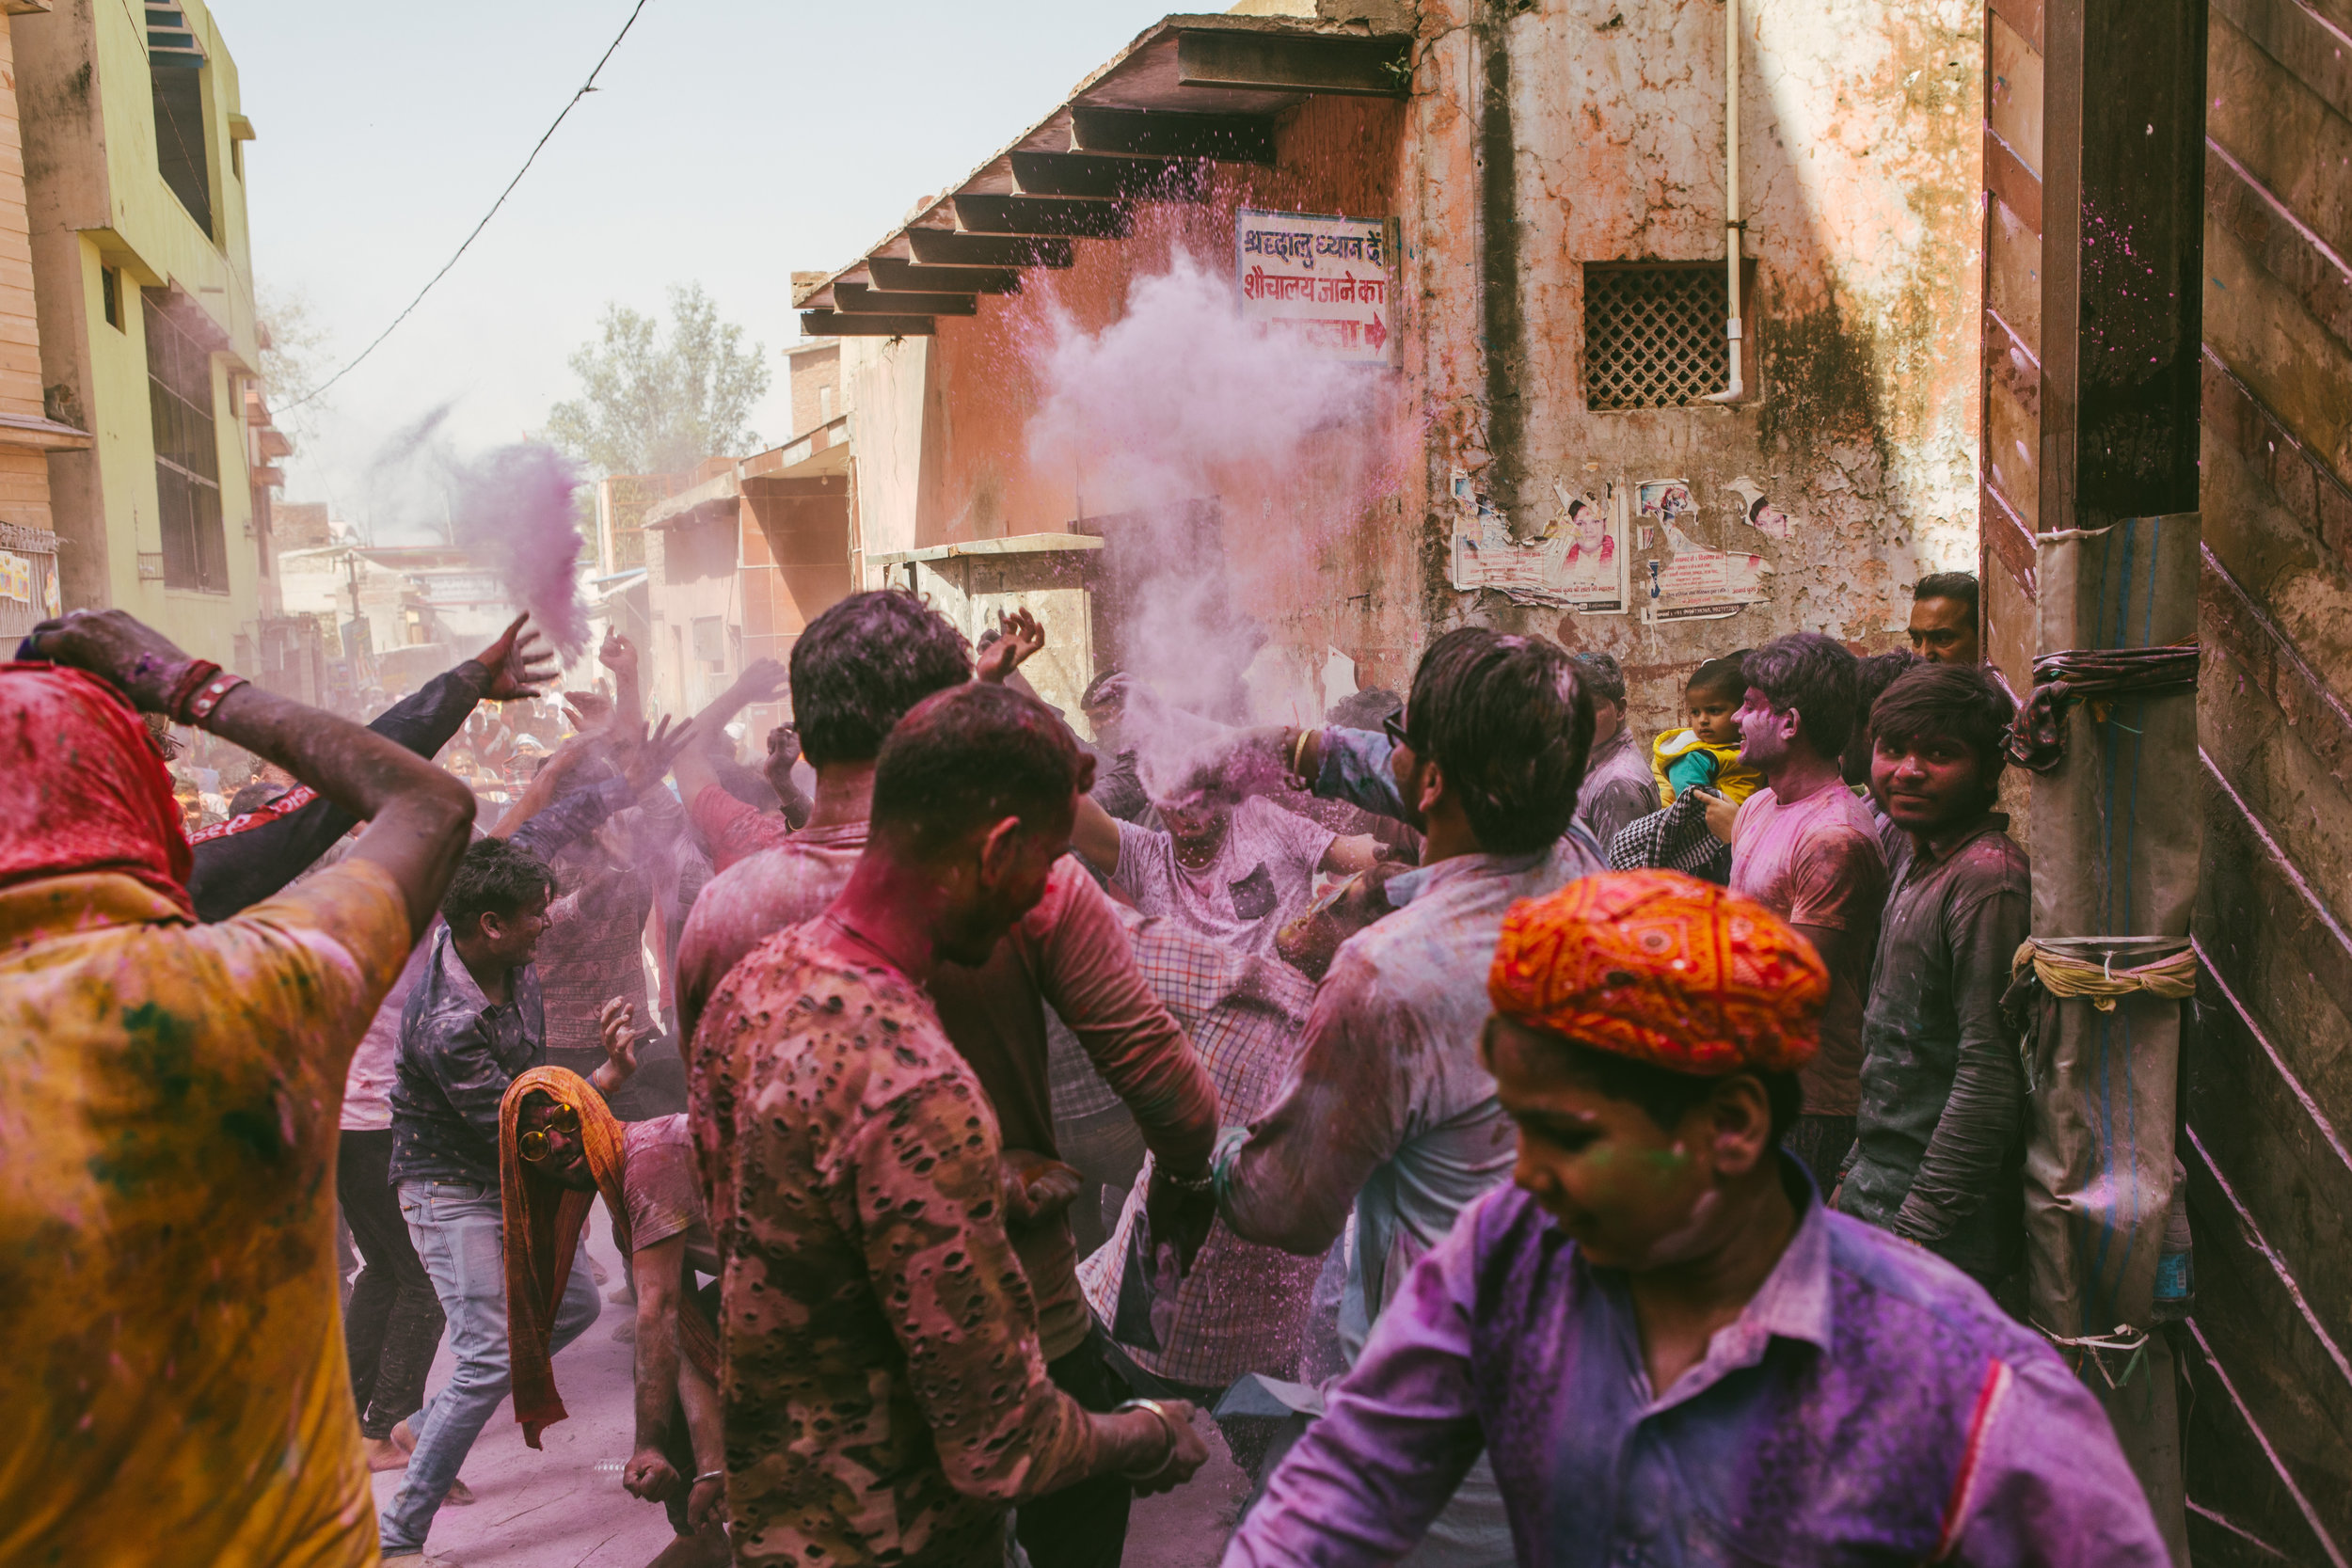 Holi in India is truly special, and something you should experience at least once … - But it can be incredibly overwhelming if you're not prepared. Read on carefully to get the most out of the experience.